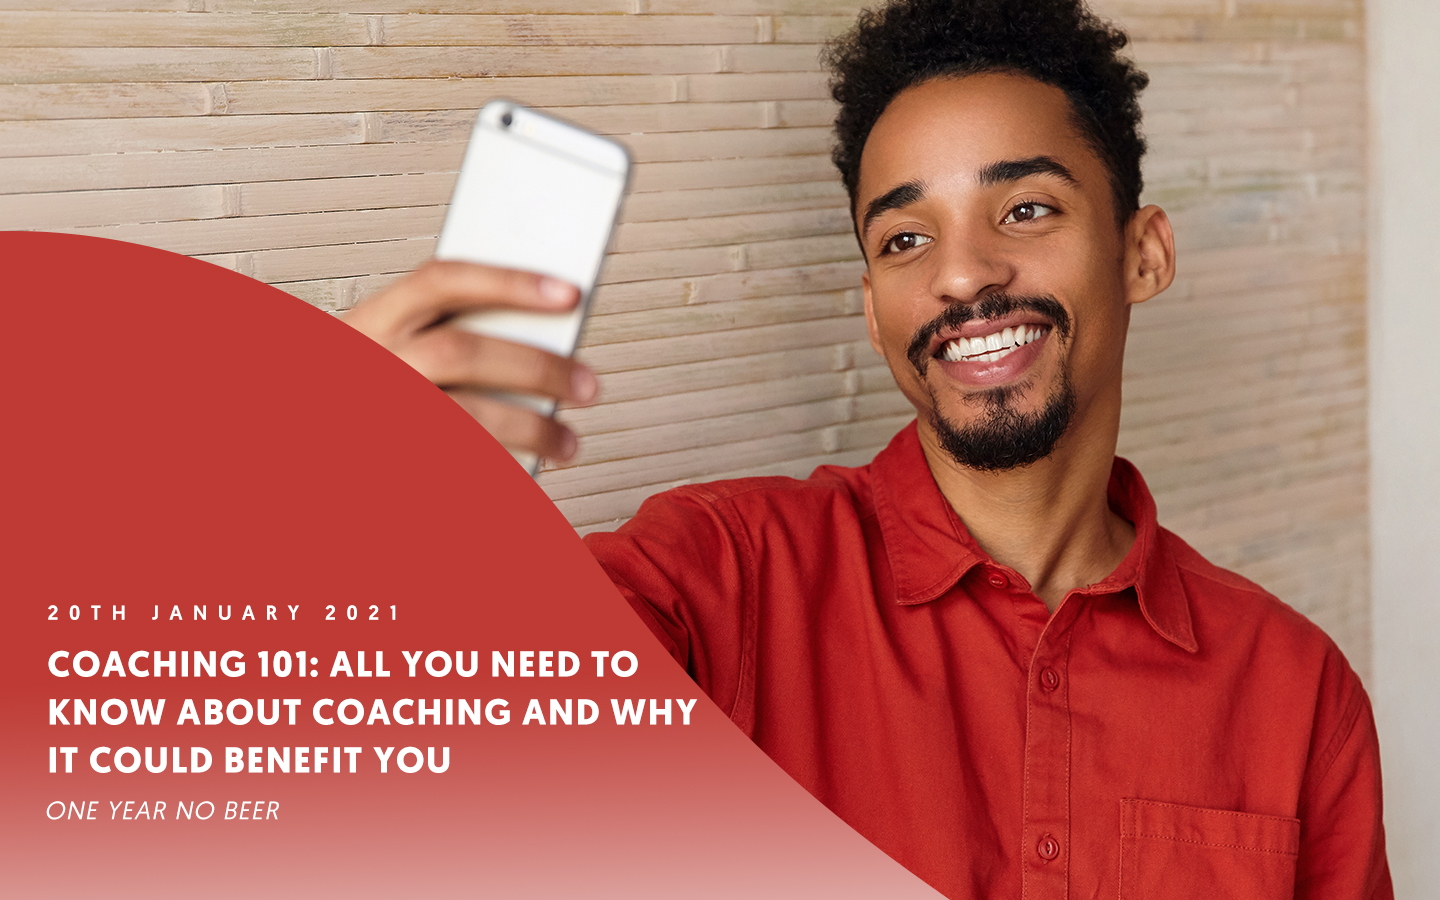 Coaching 101: All you need to know about coaching and why it could benefit you